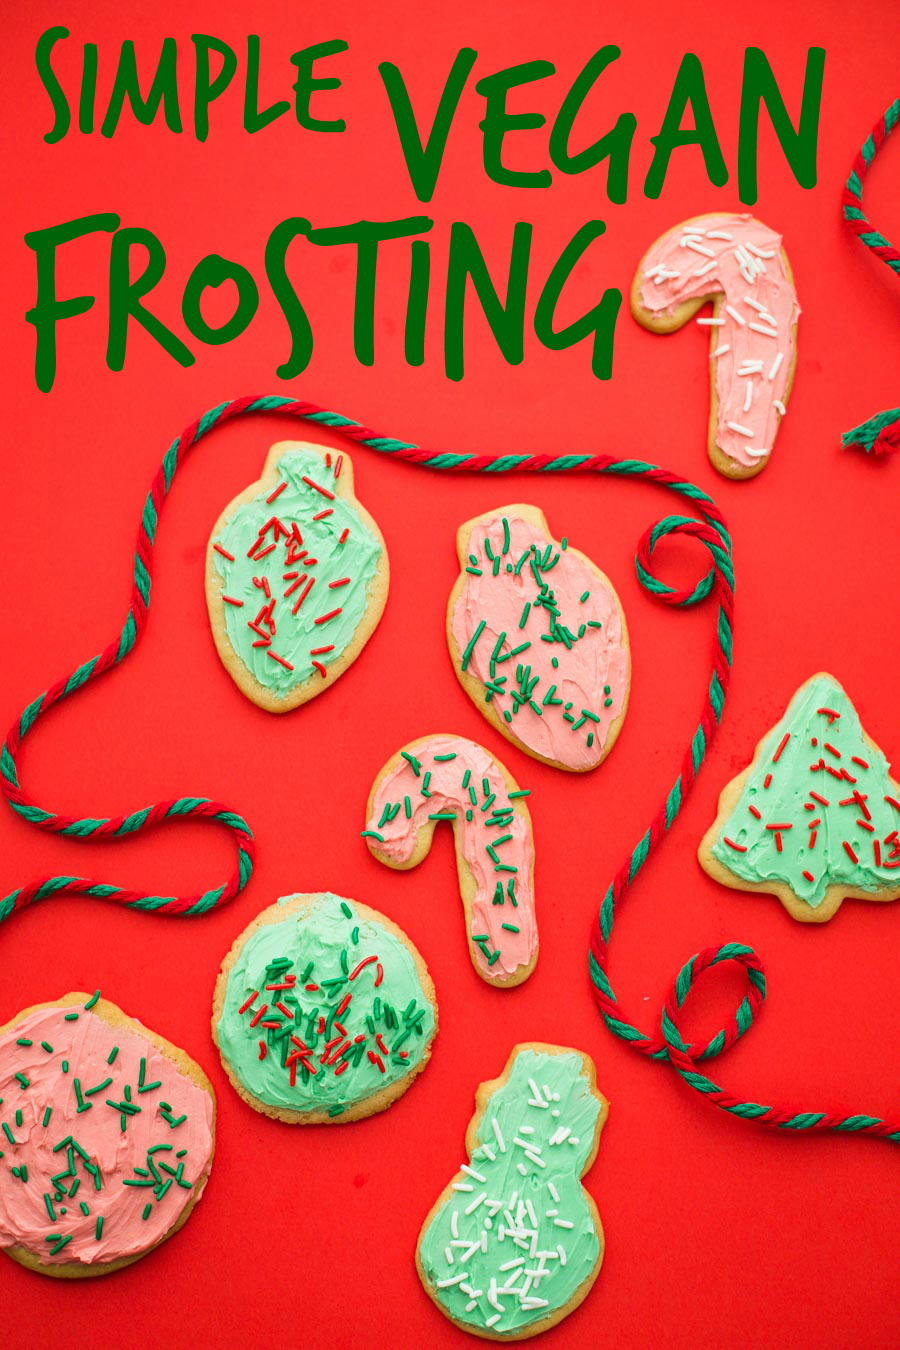 Simple Vegan Frosting for cookies, cakes, and enything else you desire to frost!